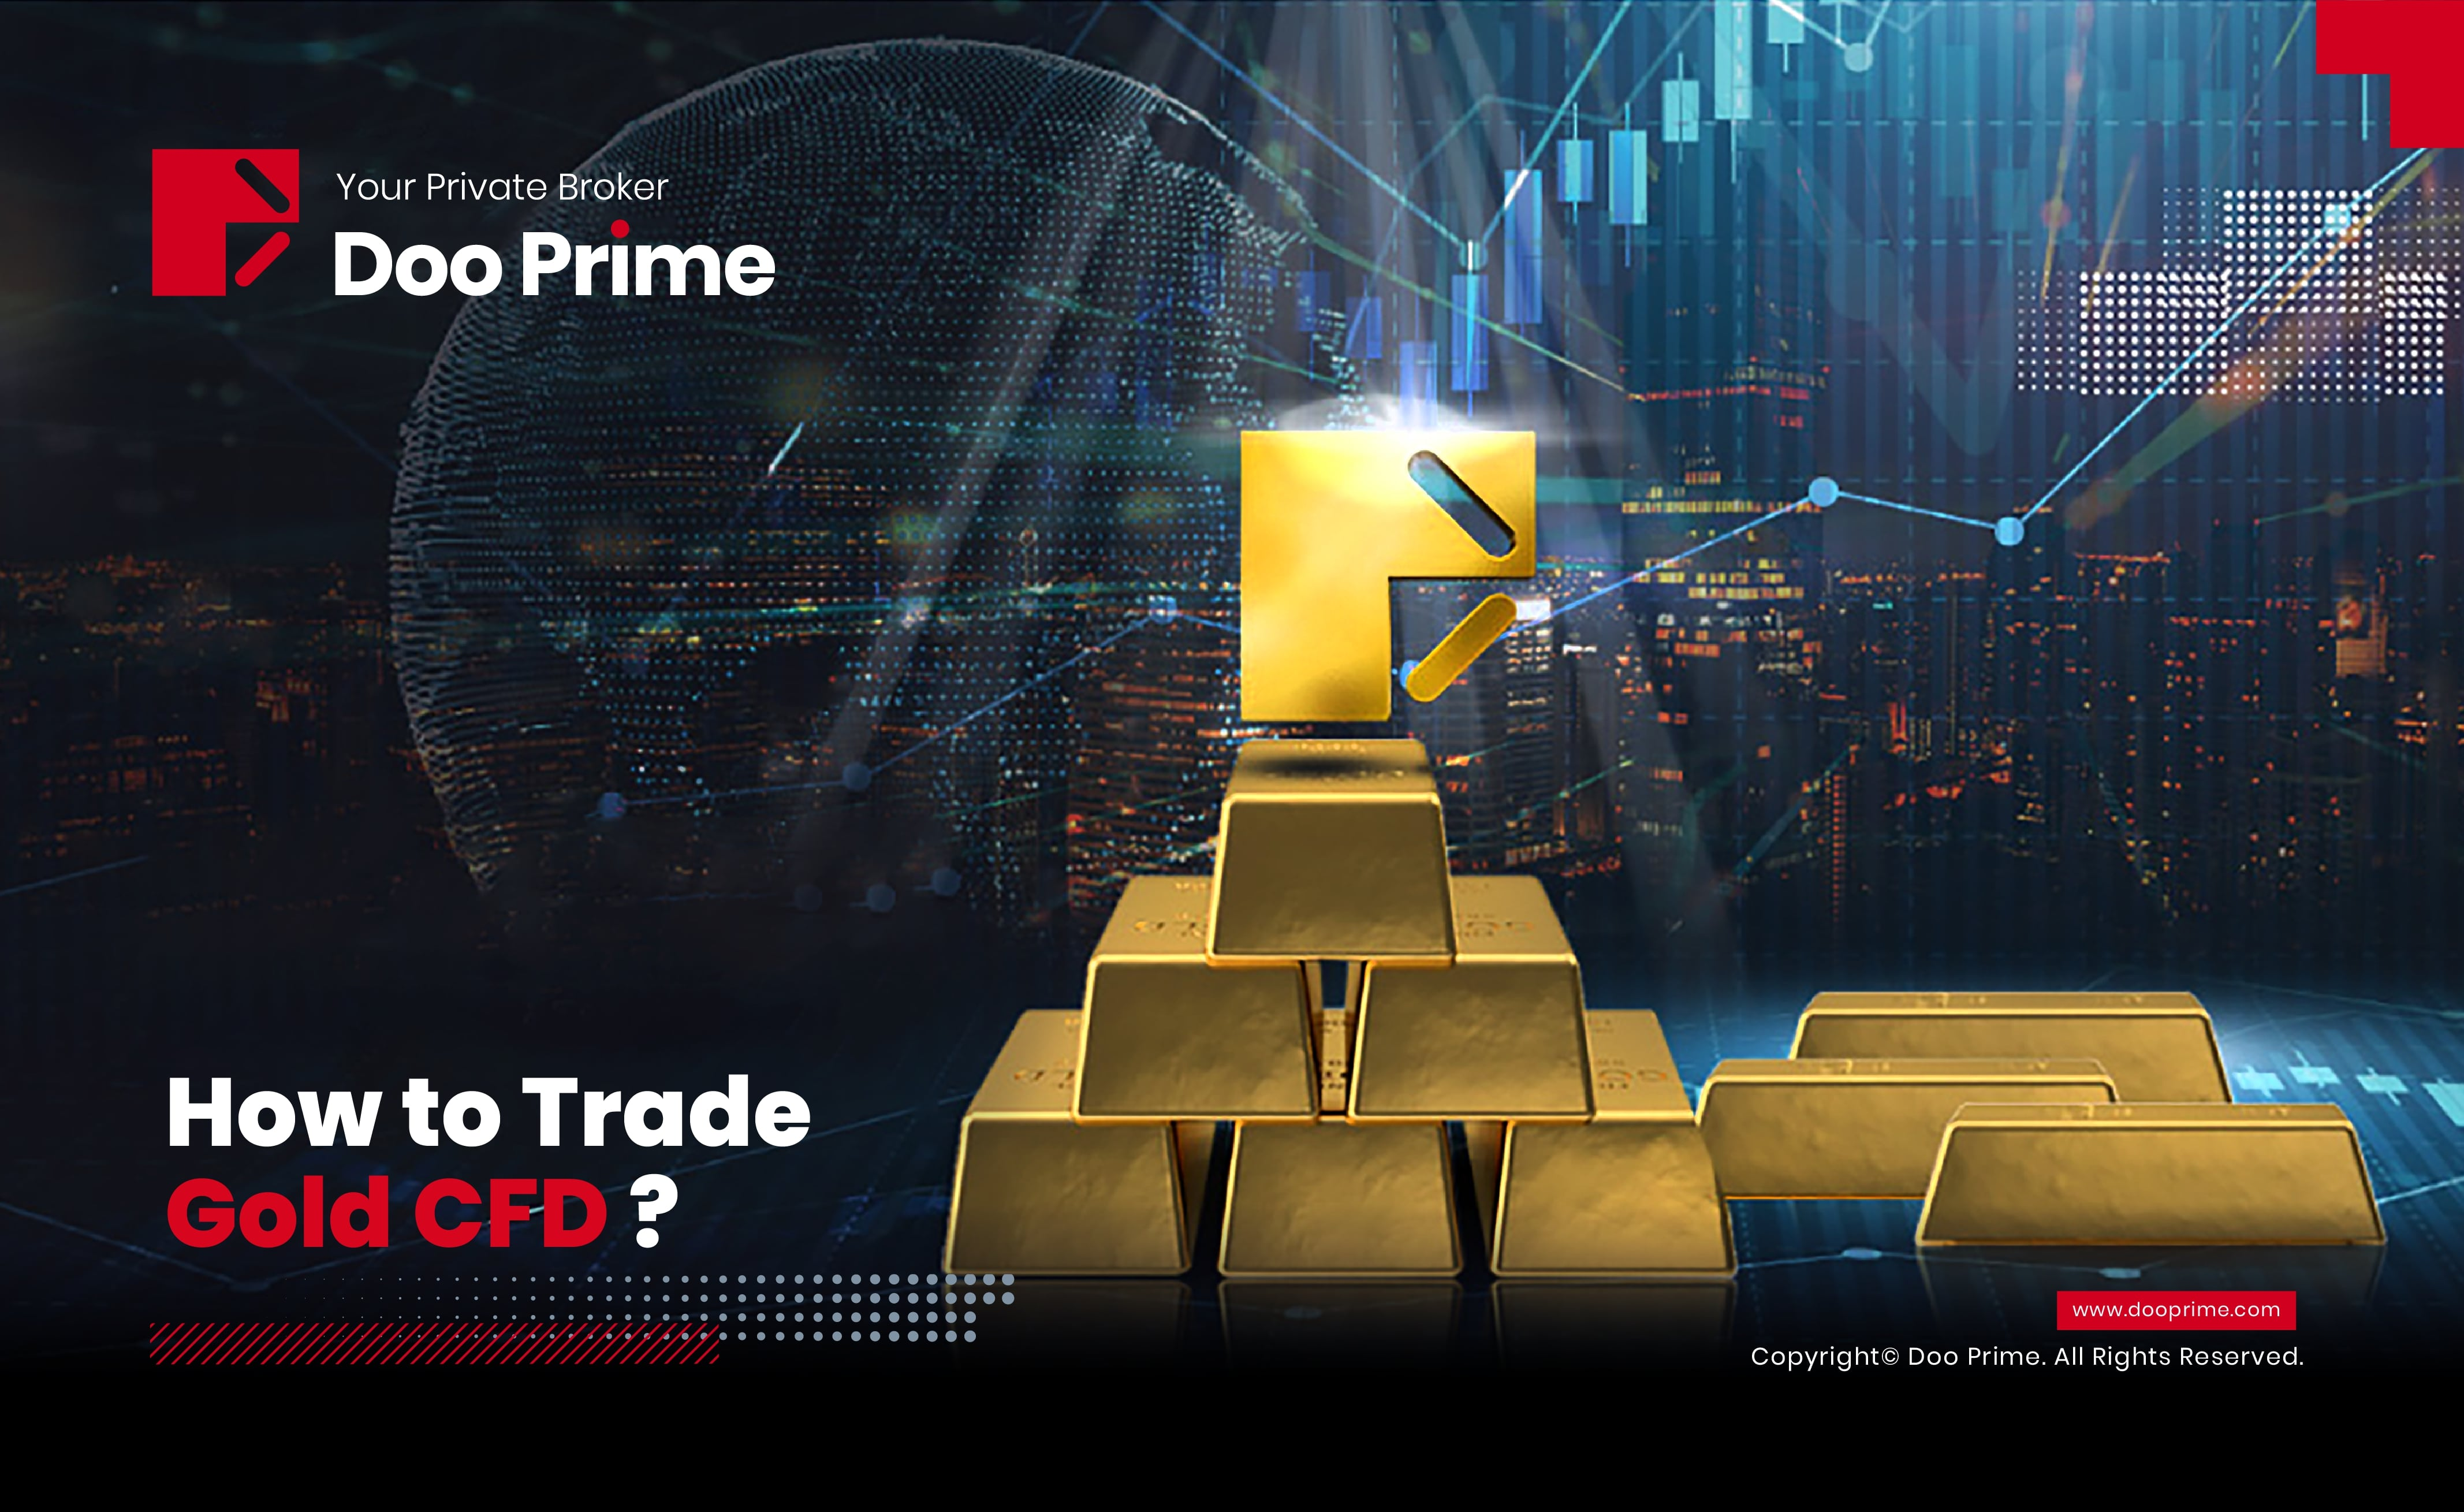 How to Trade Gold CFD?